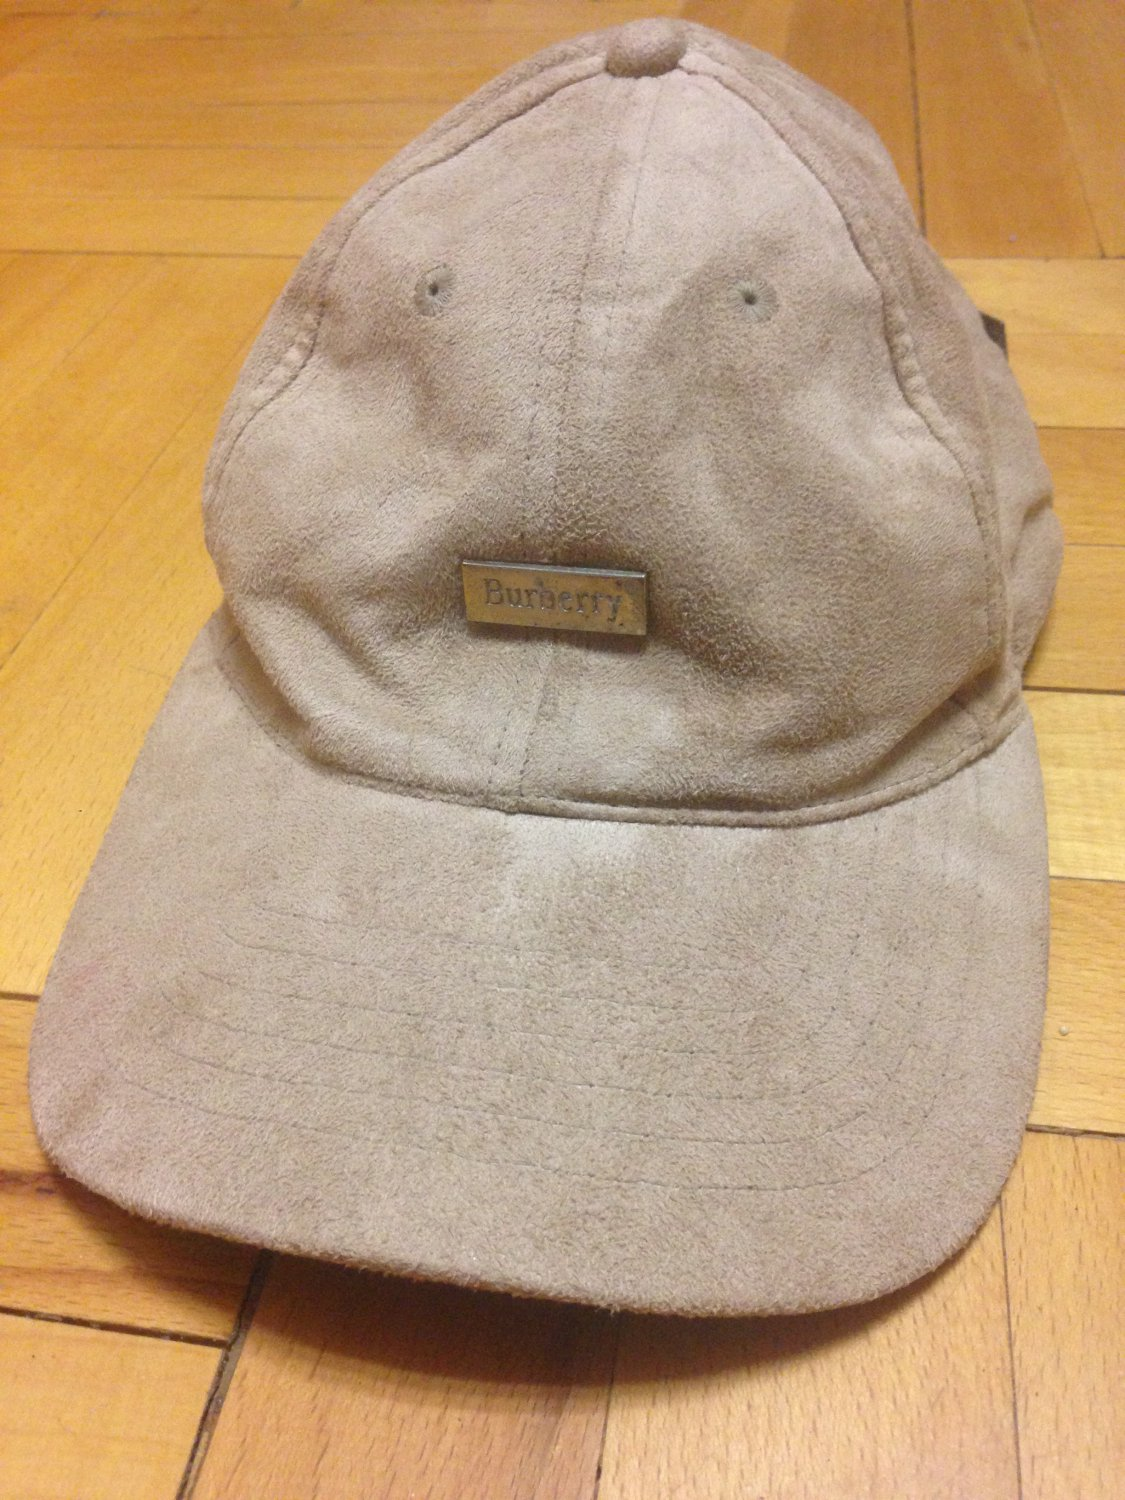 Burberry vintage suede baseball cap One size